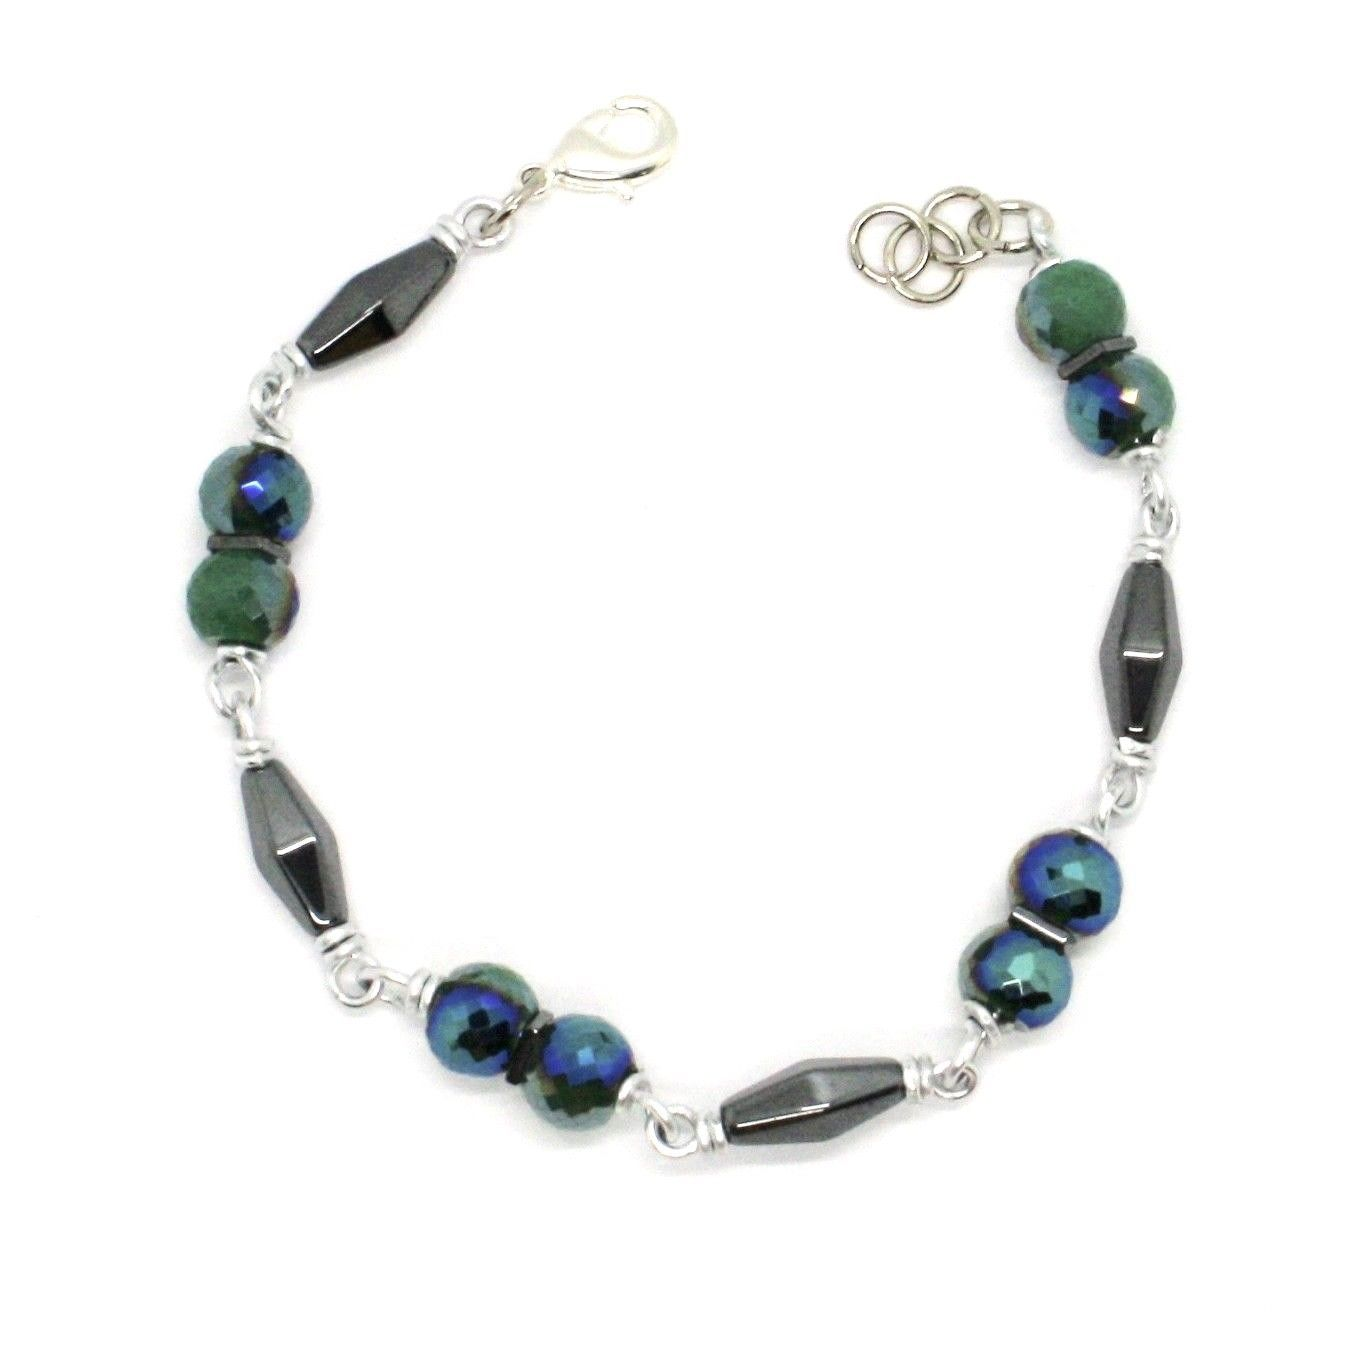 BRACELET THE ALUMINIUM LONG 19 CM WITH HEMATITE AND CRYSTAL DARK GREEN